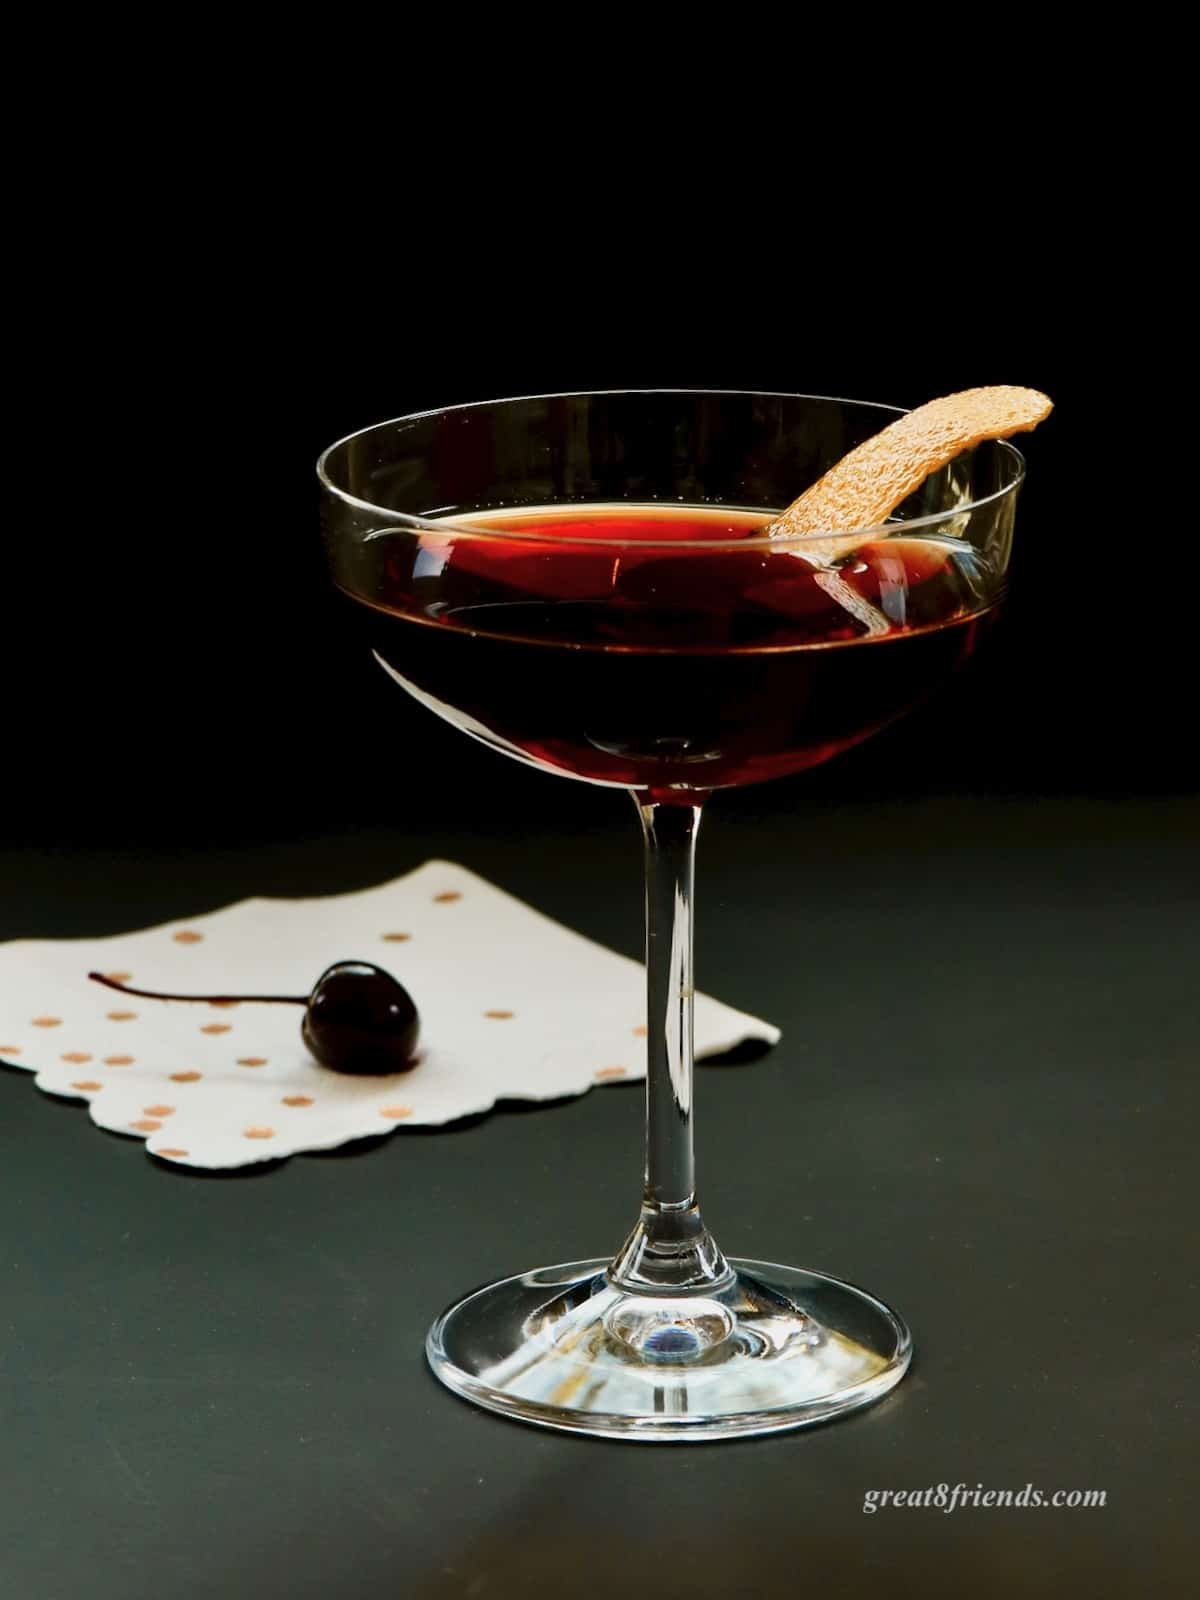 A cherry Manhattan in a coupe glass garnished with orange peel with a cherry on a napkin.